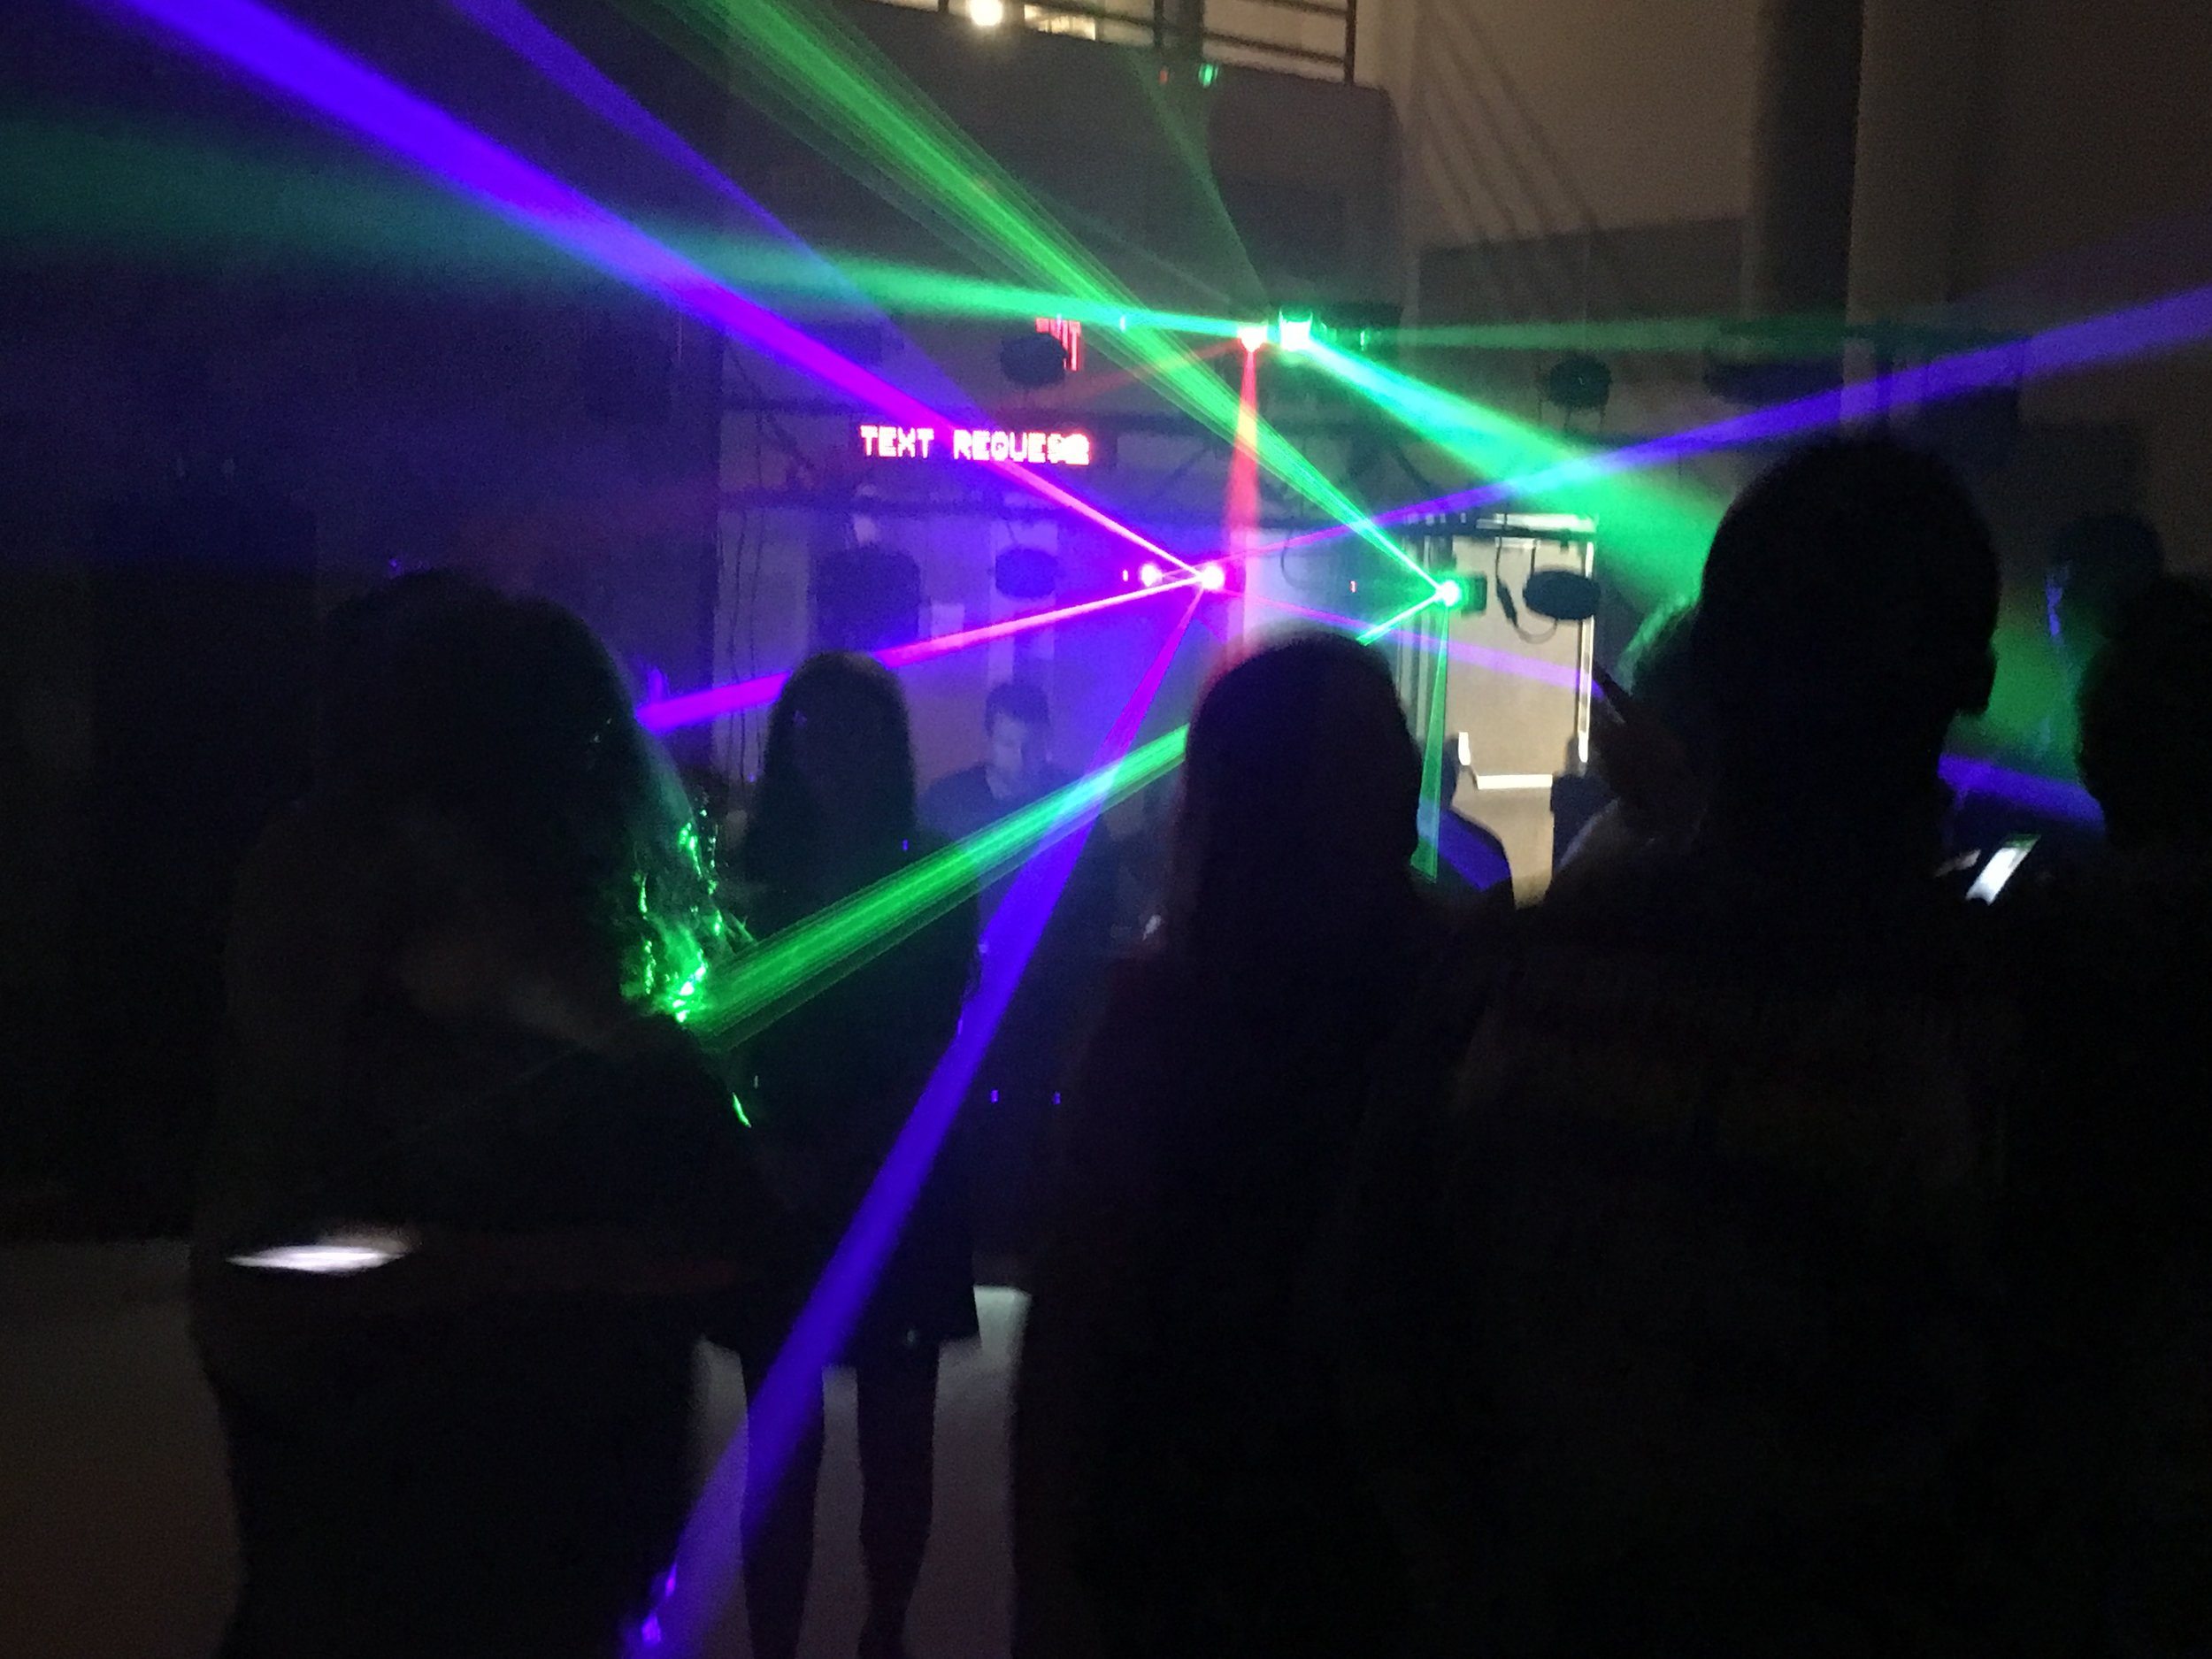 Dance Party with Fog Machine, Bubbles, and a Testing Request Line!